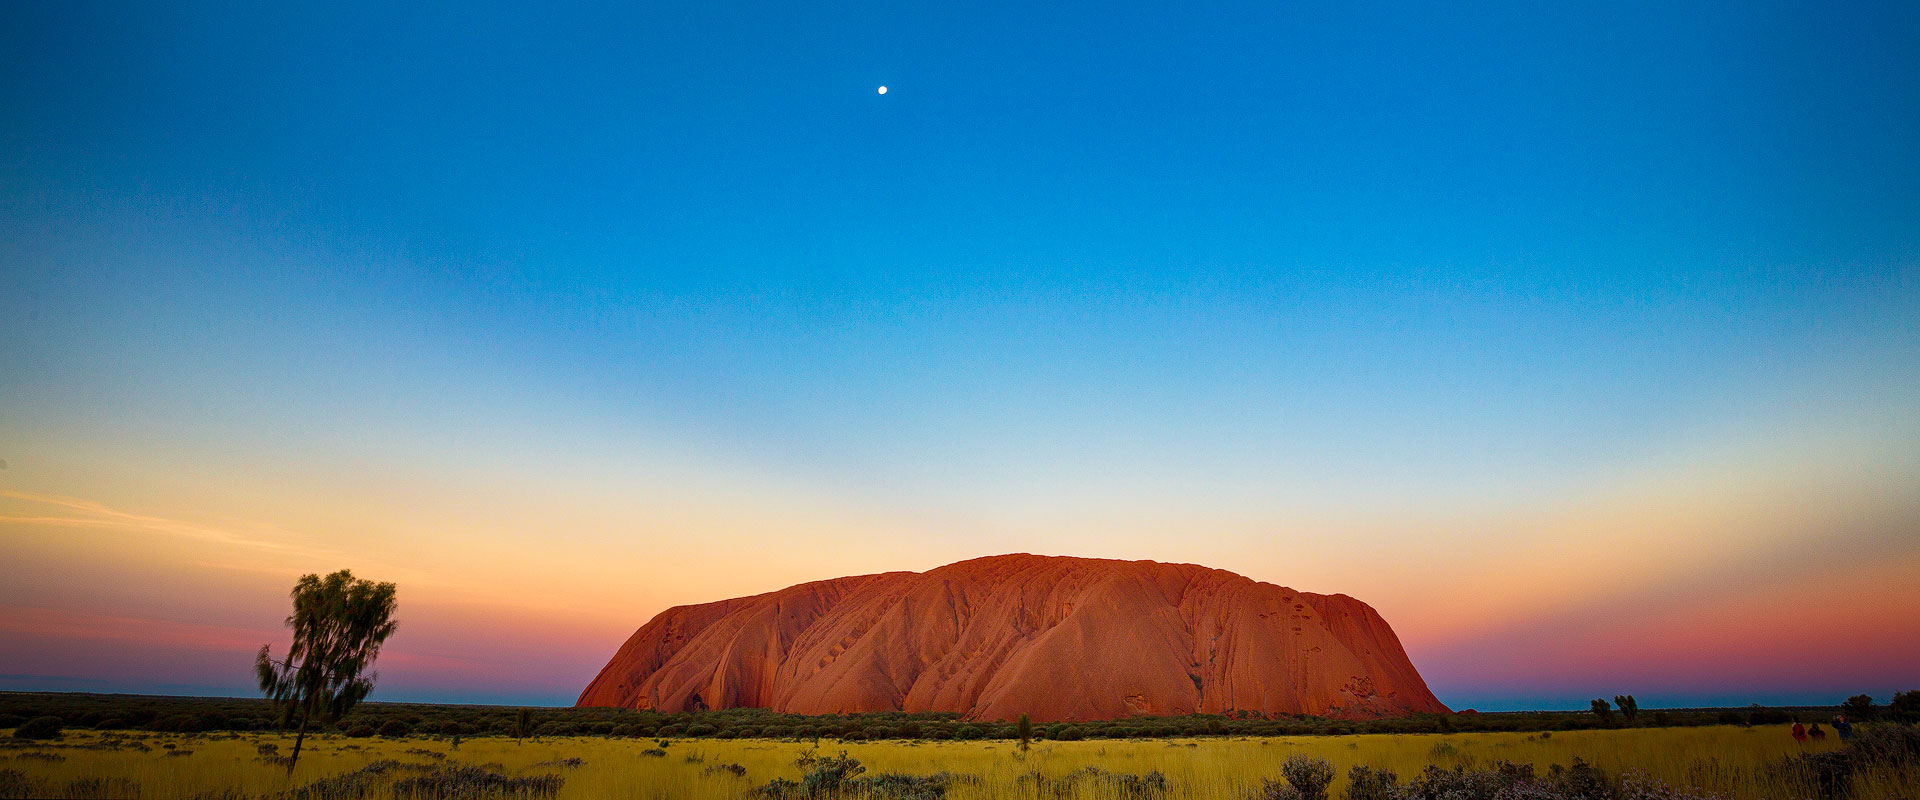 Outback Photography Gallery Andrew Barnes Photography